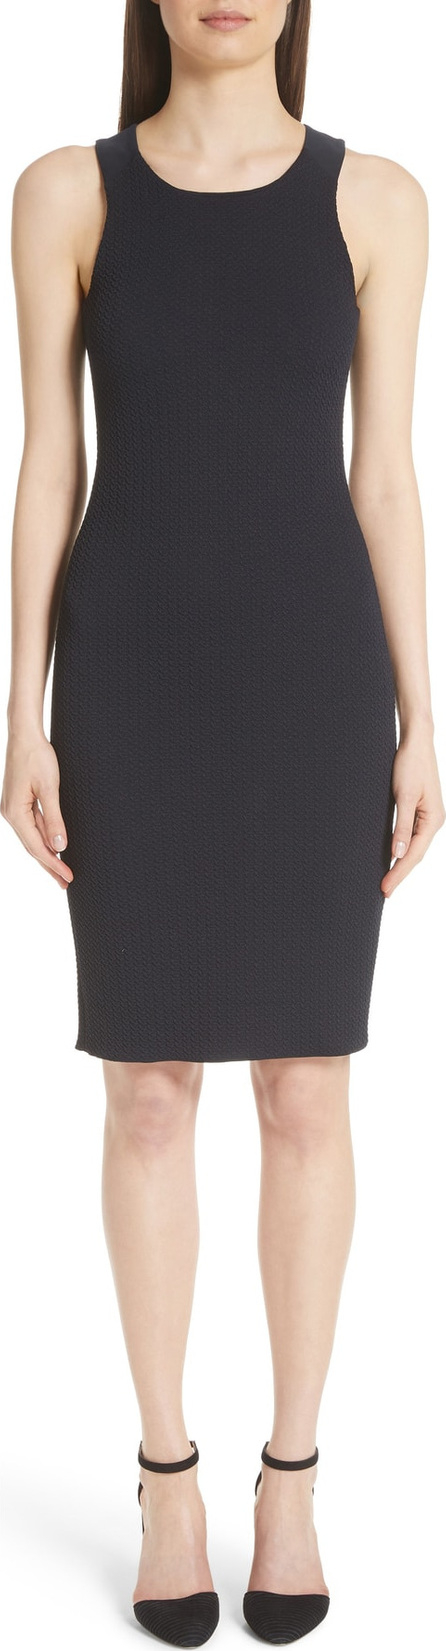 Emporio Armani Stretch Jacquard Tank Dress